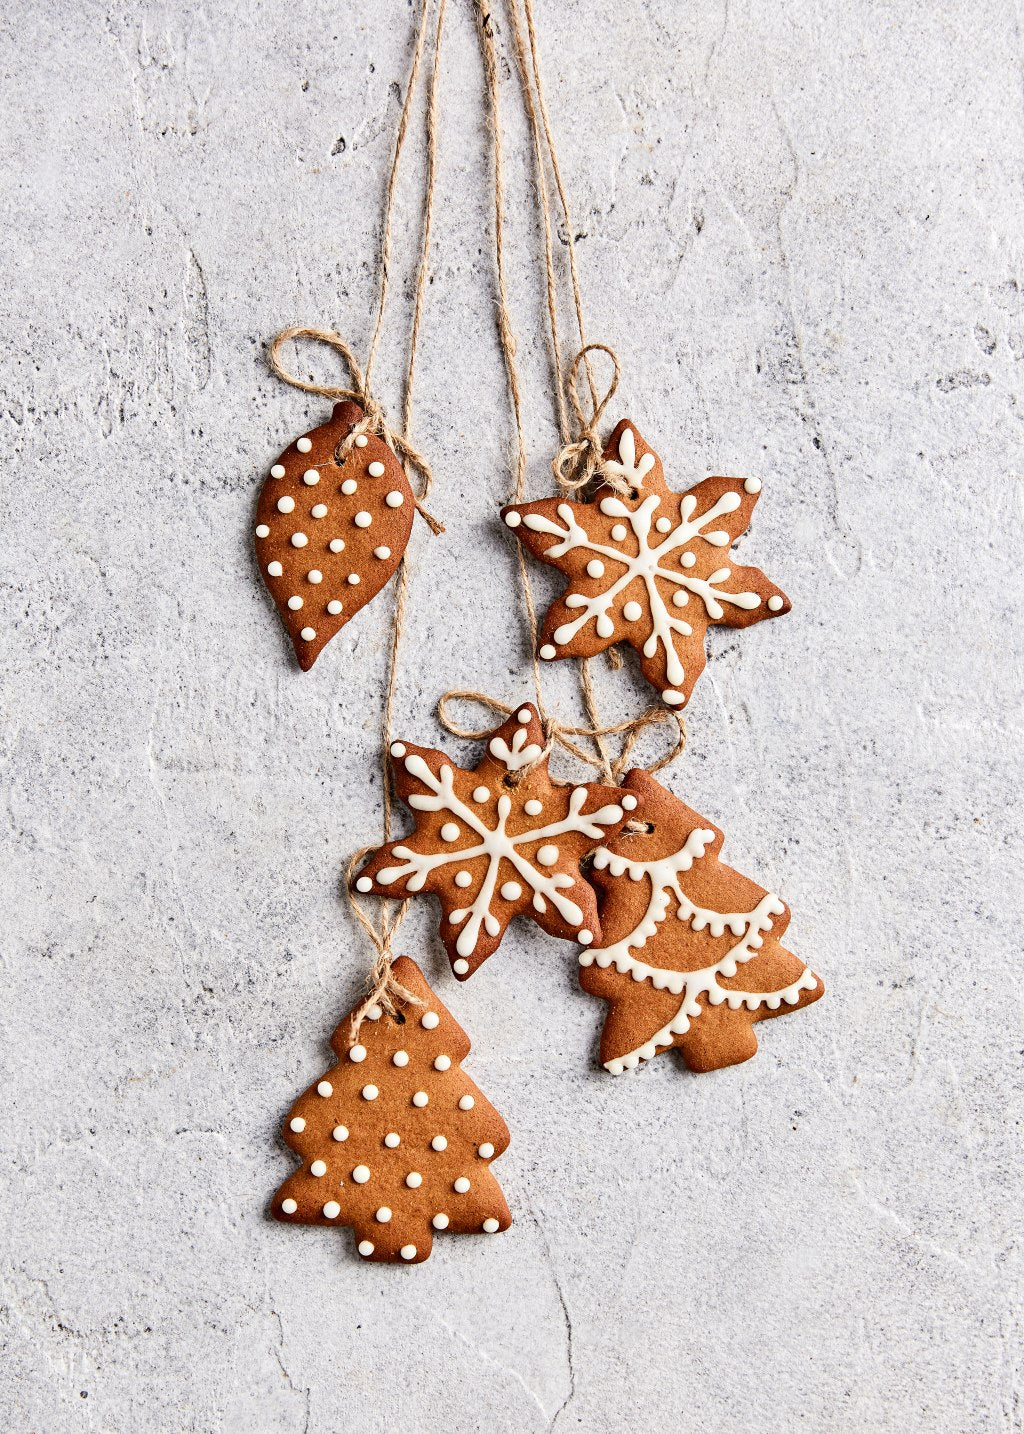 Hand Iced Gingerbread decorations | Harris Farm Markets